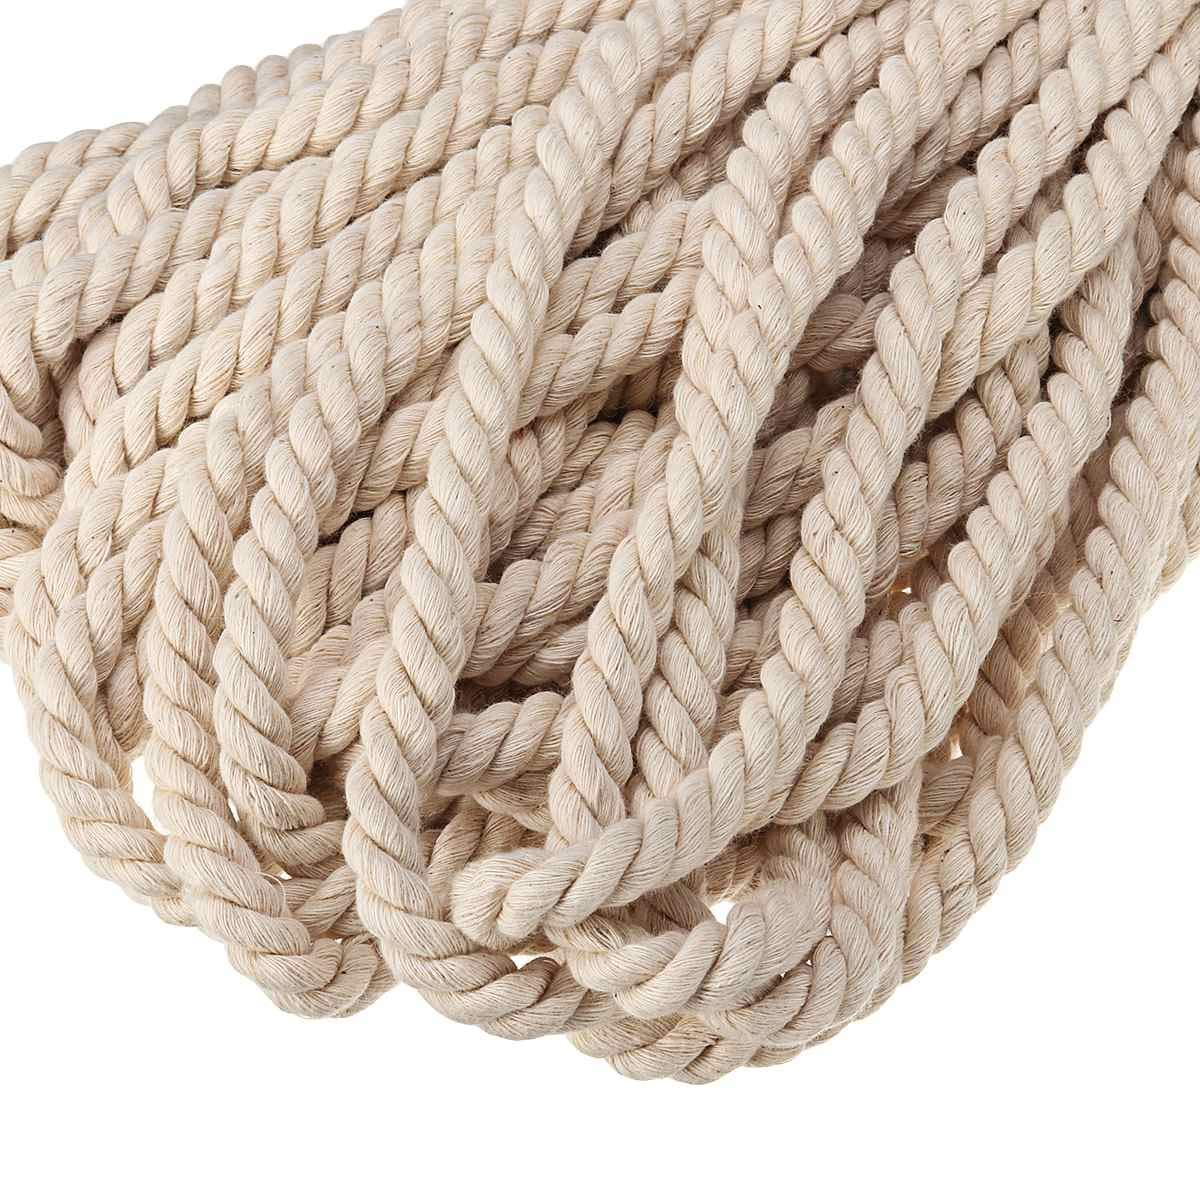 FINCOS Macrame Rope Natural Beige 10mm 45m Twisted Cord for Handmade Enthusiasts for Artisan DIY Hand Craft Cords Pure Cotton by FINCOS (Image #6)